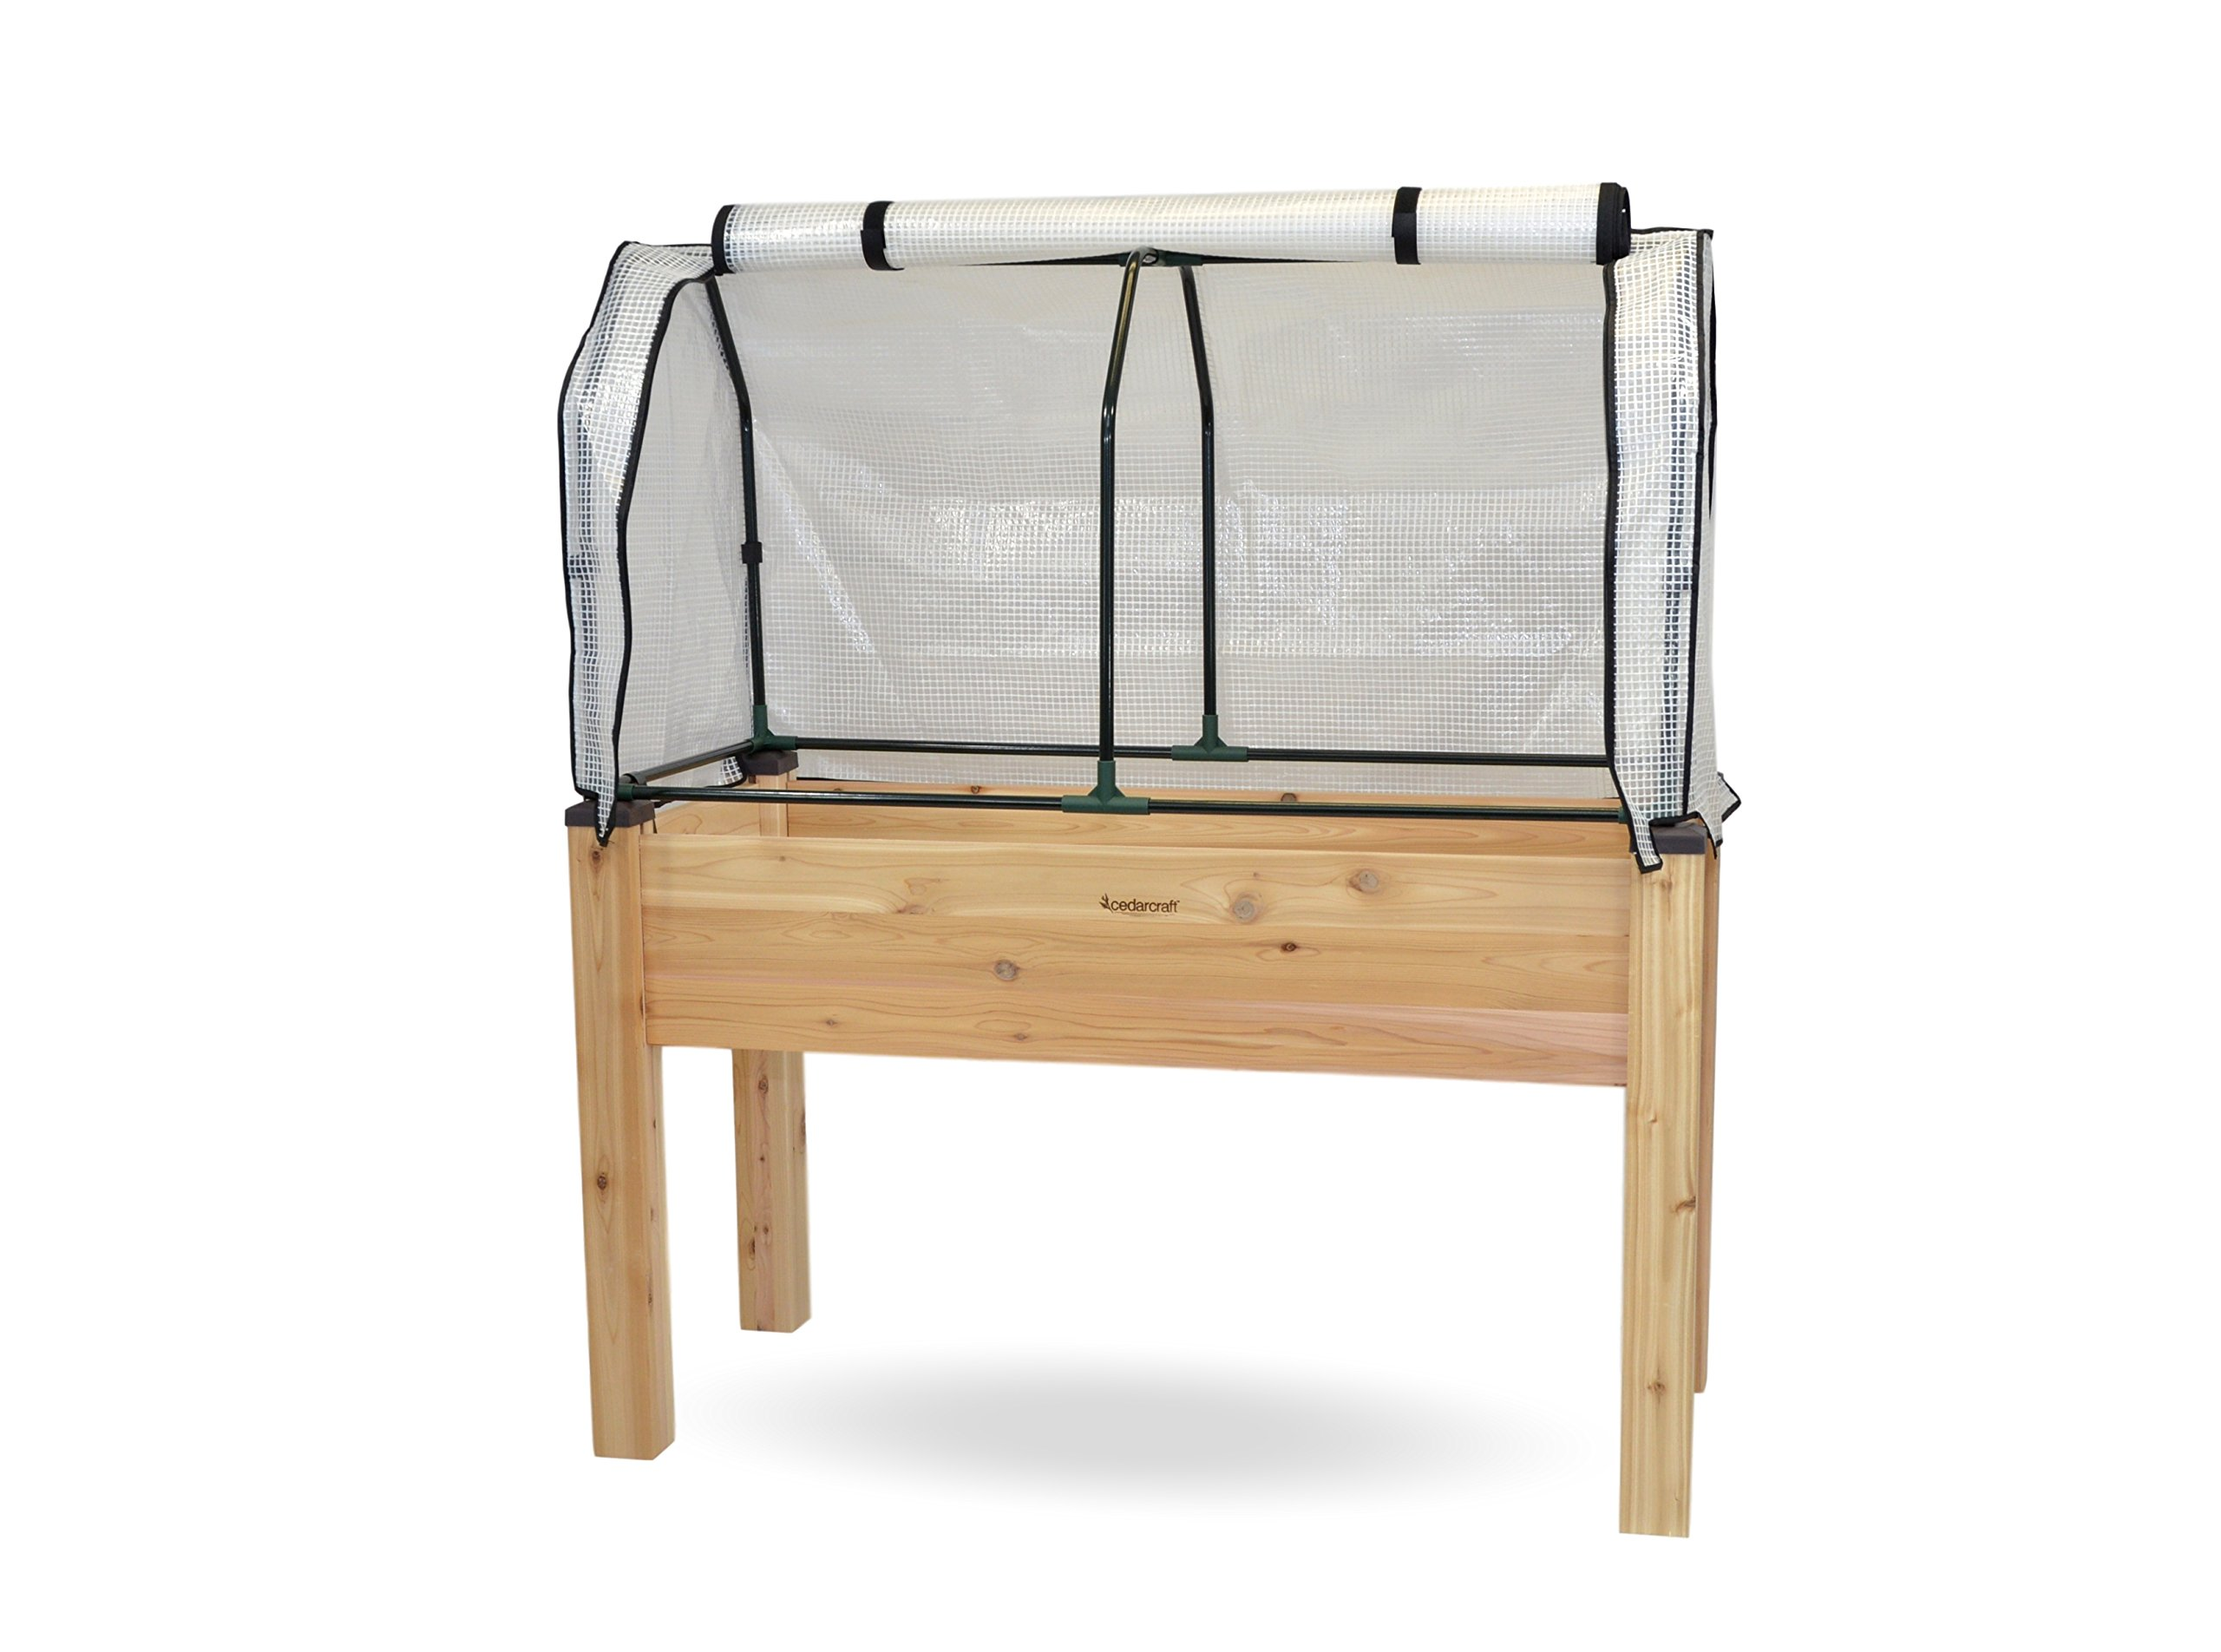 """CedarCraft Elevated Cedar Planter (23"""" x 49"""" x 30''H) + Greenhouse Cover - Complete Raised Garden kit to Grow Tomatoes, Veggies & Herbs. Greenhouse extends Growing Season, Protects Plants …"""